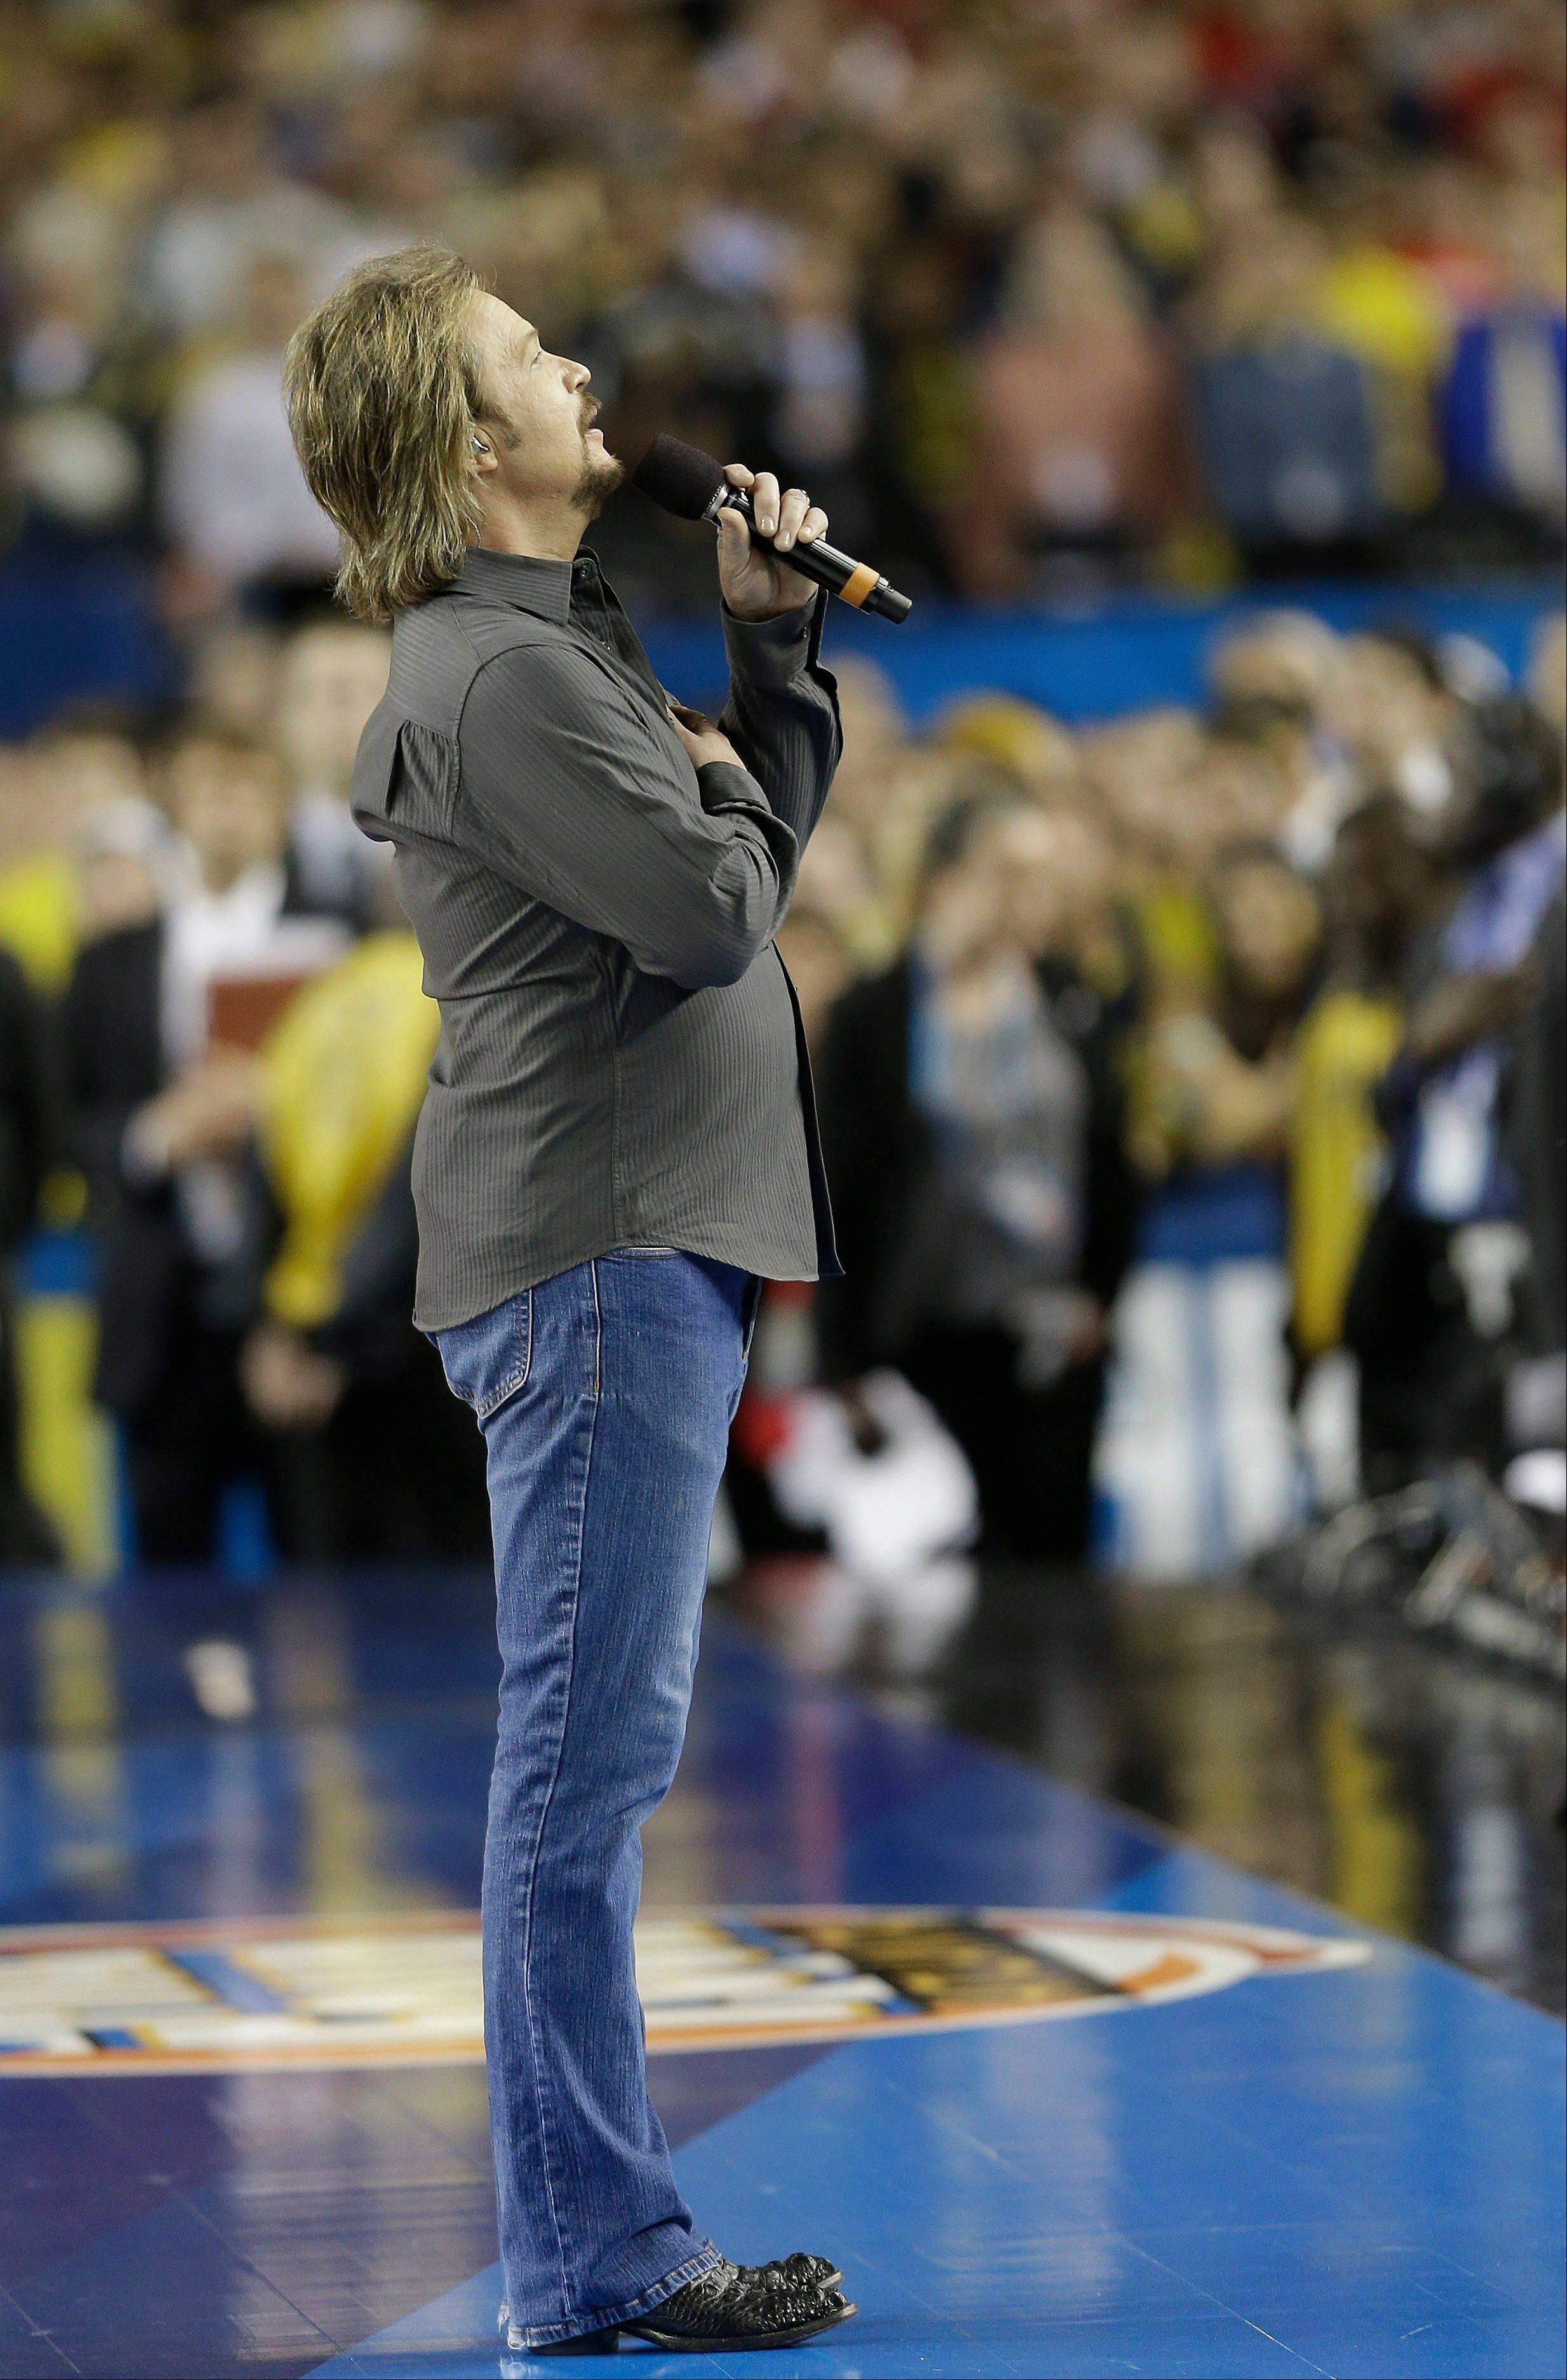 Singer Travis Tritt sings the national anthem before the first half of the NCAA Final Four tournament college basketball championship game between Michigan and Louisville, Monday, April 8, 2013, in Atlanta.